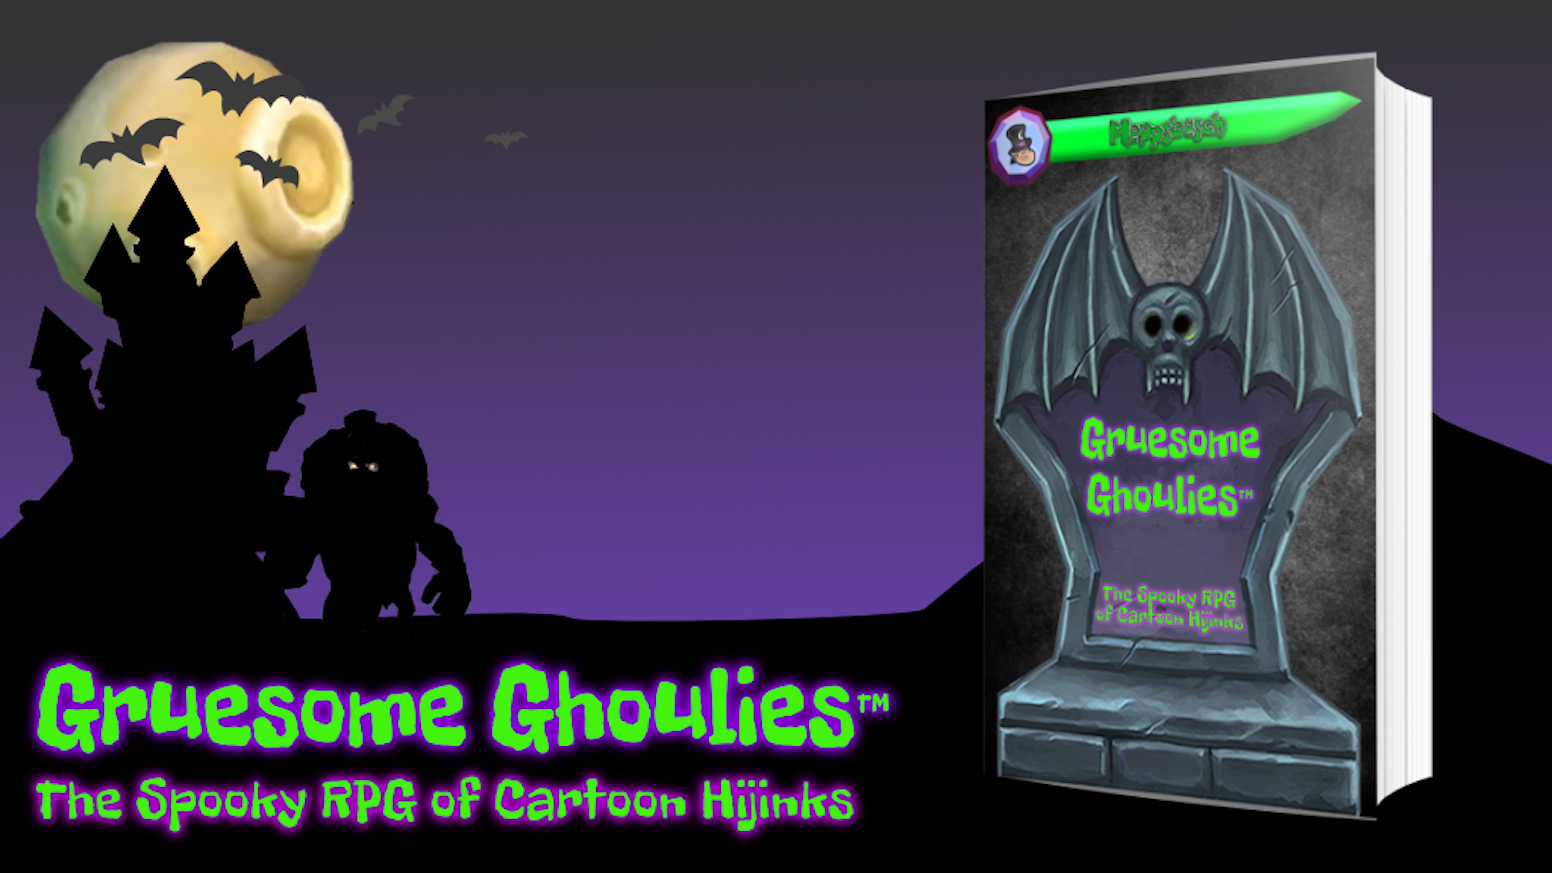 www.gruesomeghoulies.com